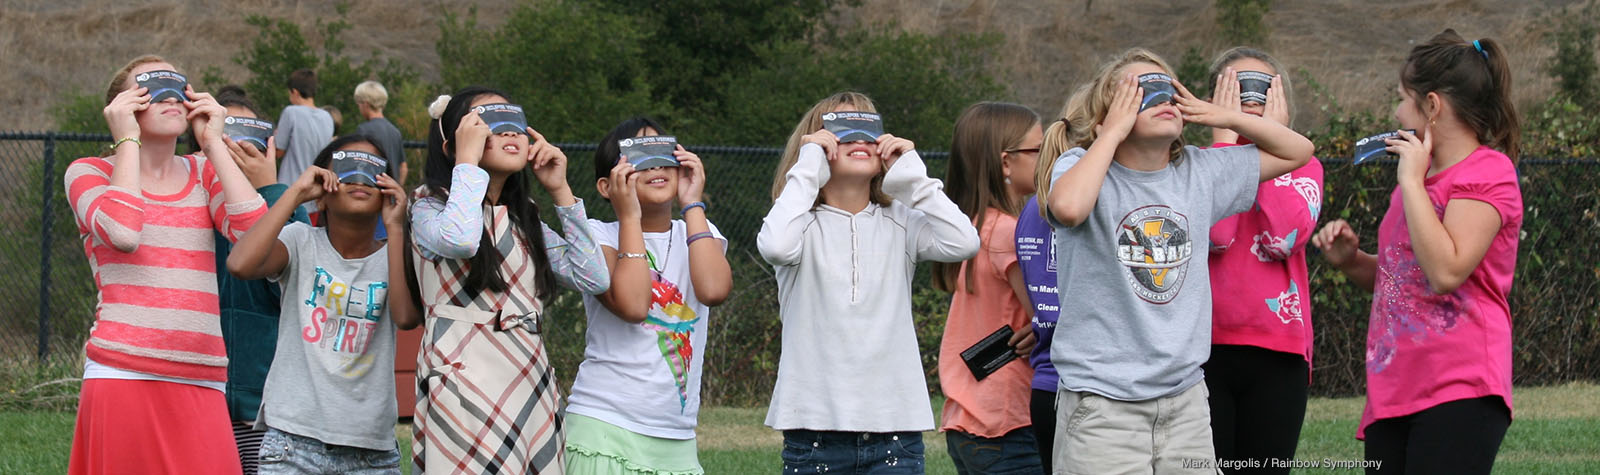 Eclipse Watchers with Safe Solar Filters